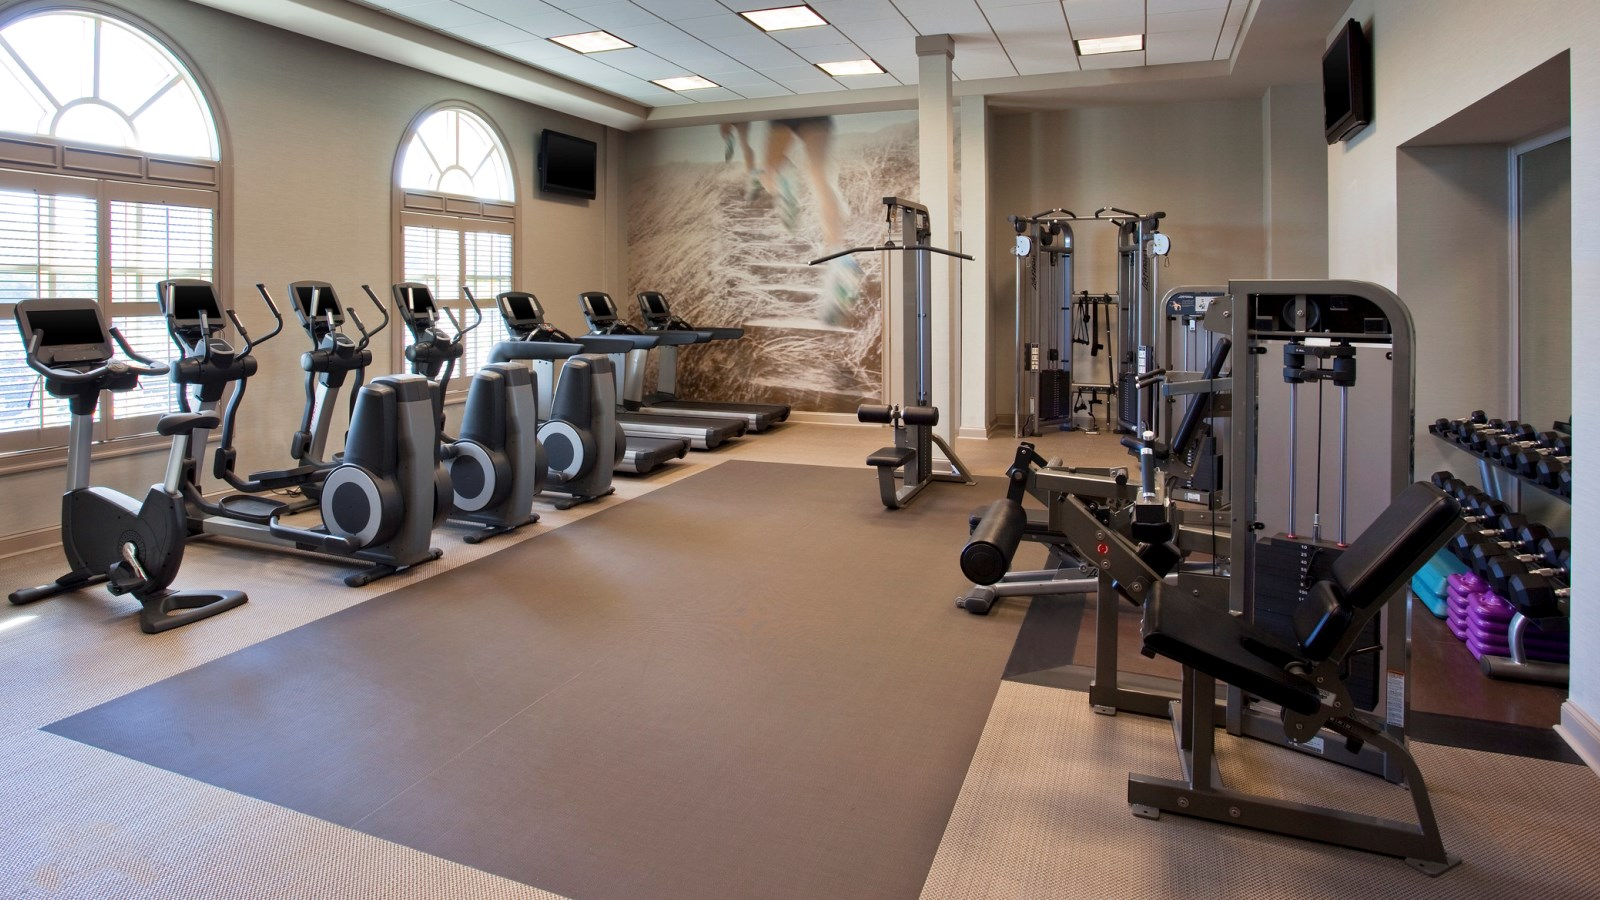 WestinWORKOUT® at The Westin Savannah Harbor Golf Resort & Spa